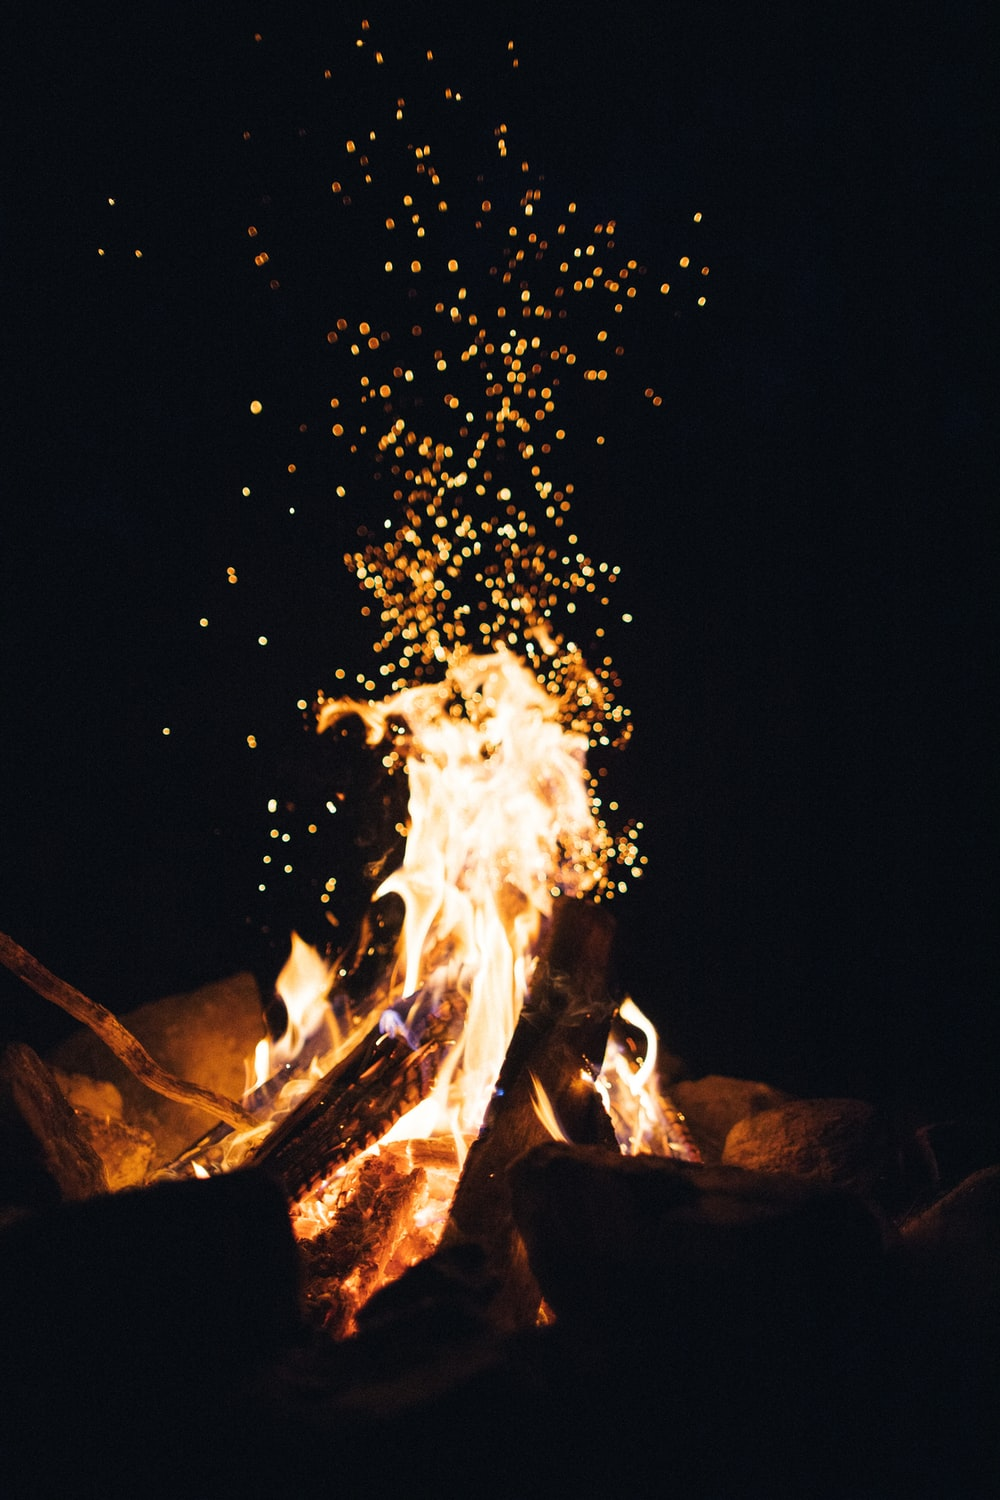 fire in the middle of a bonfire